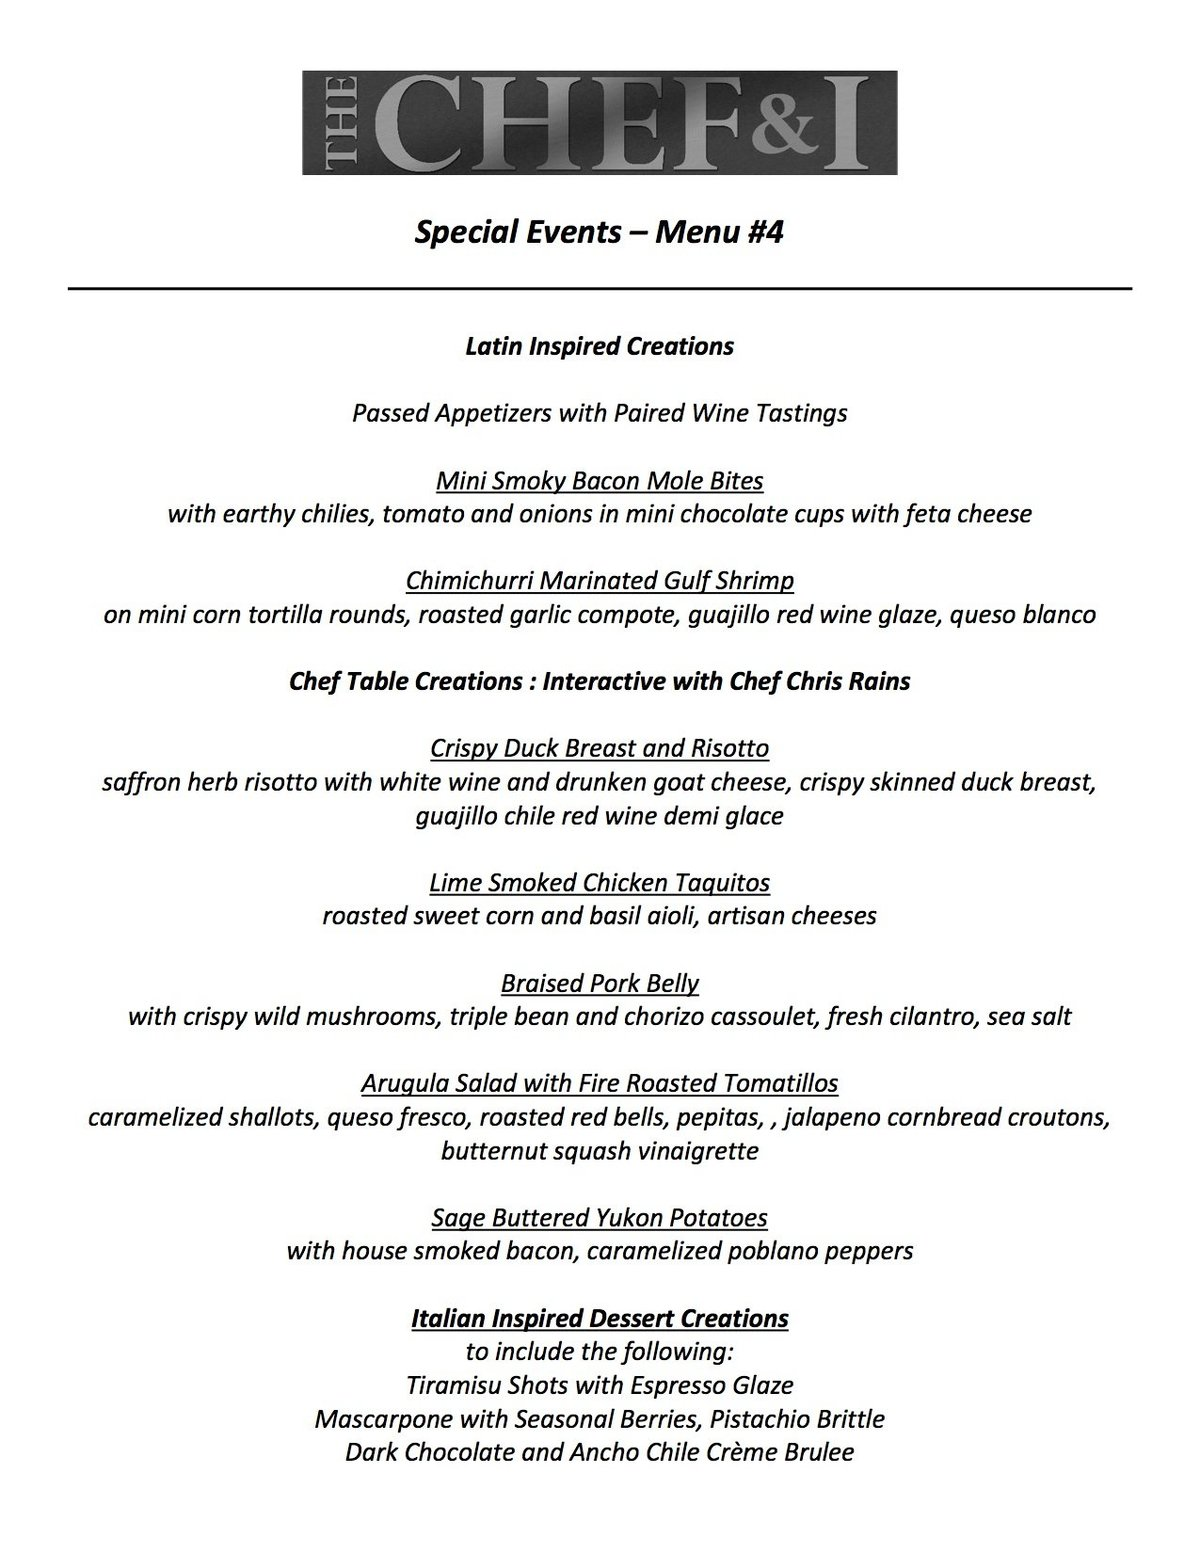 Special Events Menu 4